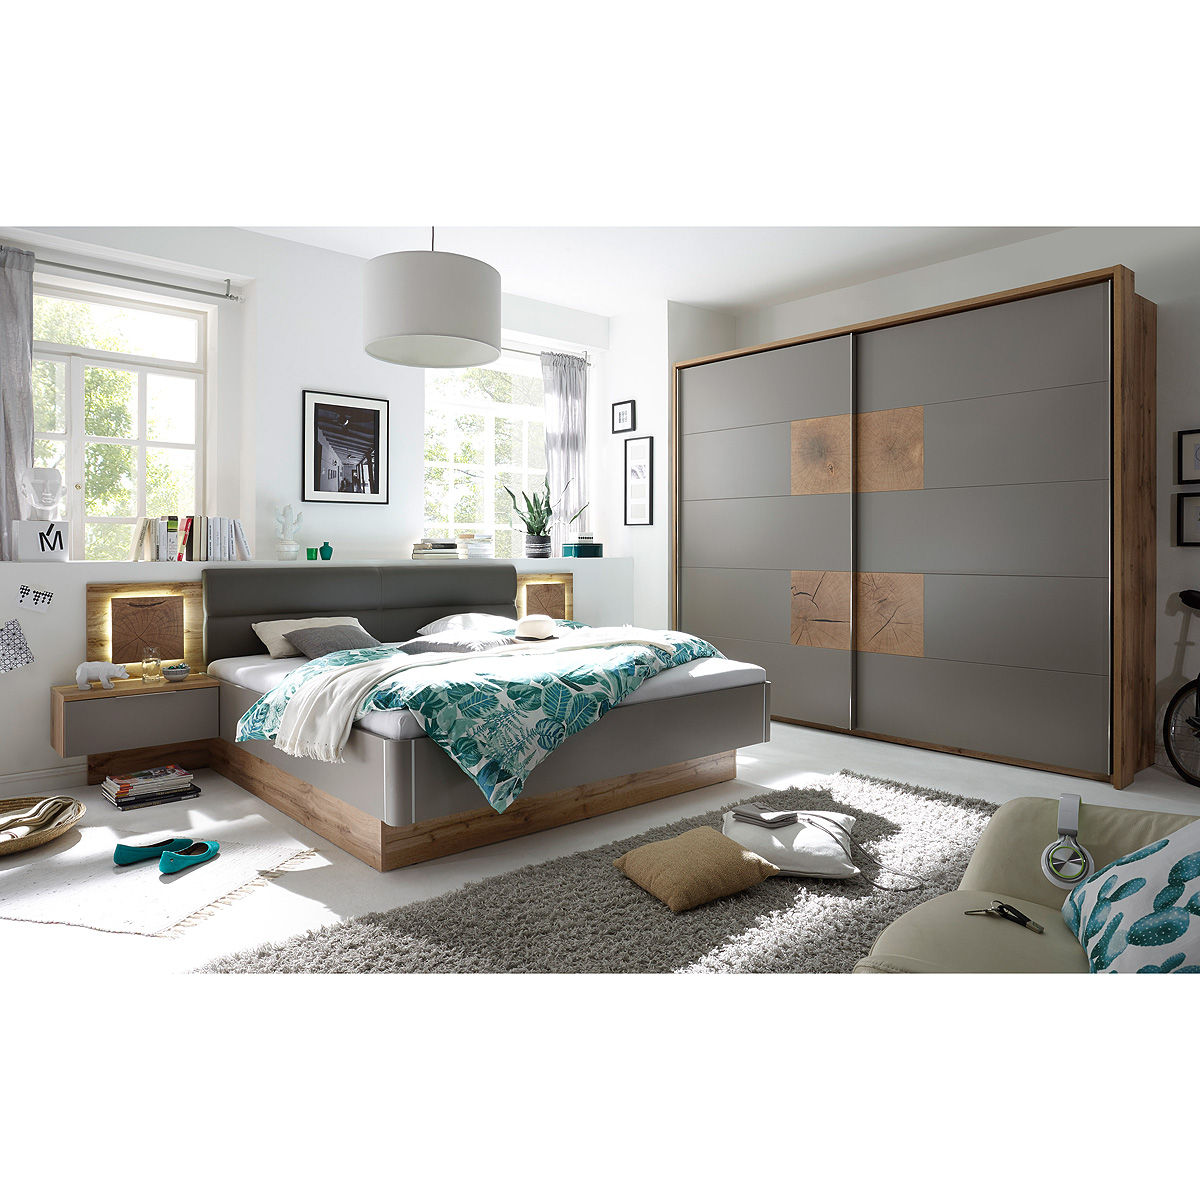 schlafzimmer capri bett schrank nako in wildeiche basalgrau hirnholz taupe led ebay. Black Bedroom Furniture Sets. Home Design Ideas